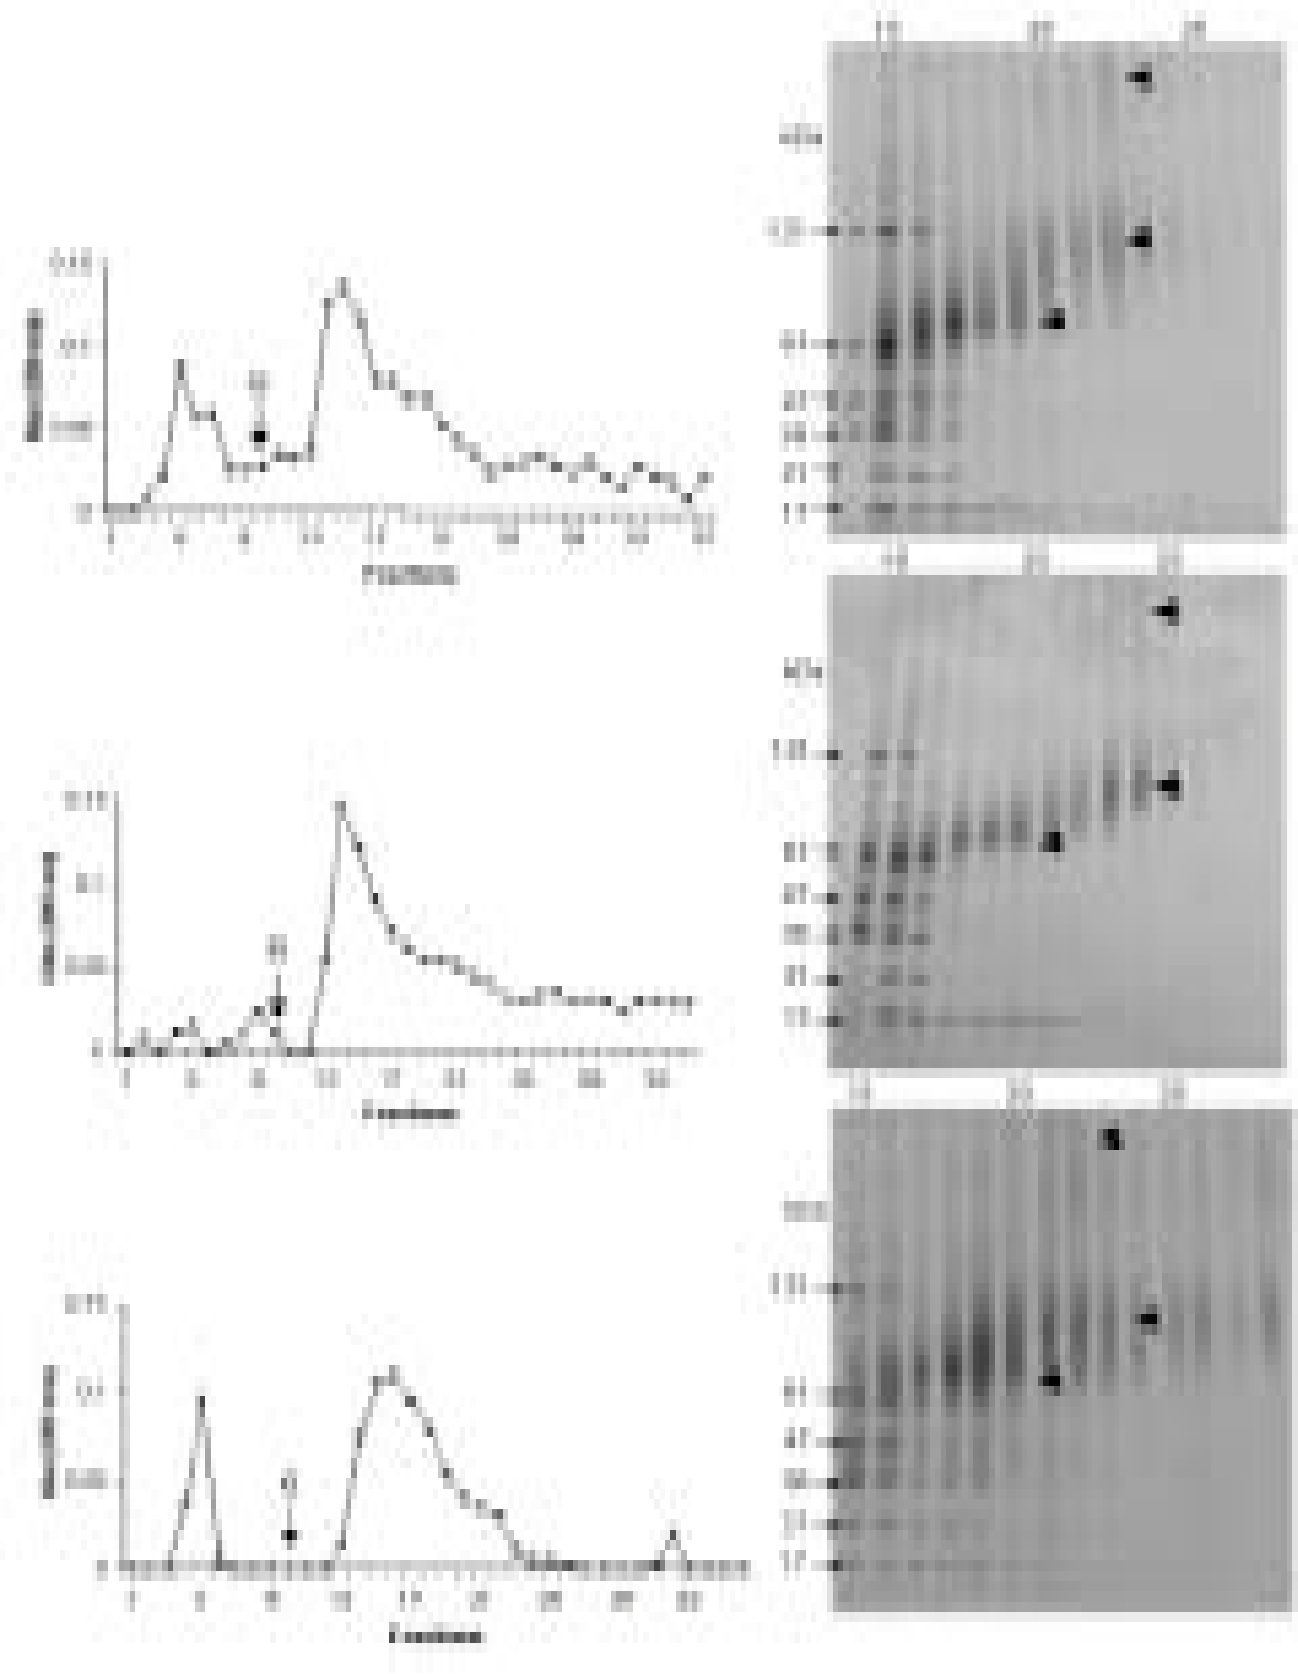 FIGURE 3. DEAE-Sephacel chromatography (A,C,E) and SDS-PAGE (B,D,F) of PL, PM and DC extracts. The proteins were eluted with a gradient (0.1-1.0 M) of NaCl. G - start of the gradient. The gels show proteins with molecular masses 121, 61, 47, 36, 21 and 17 kDa. Polydisperse bands were also seen at 67, 80-100 and 250-300 kDa (<). s